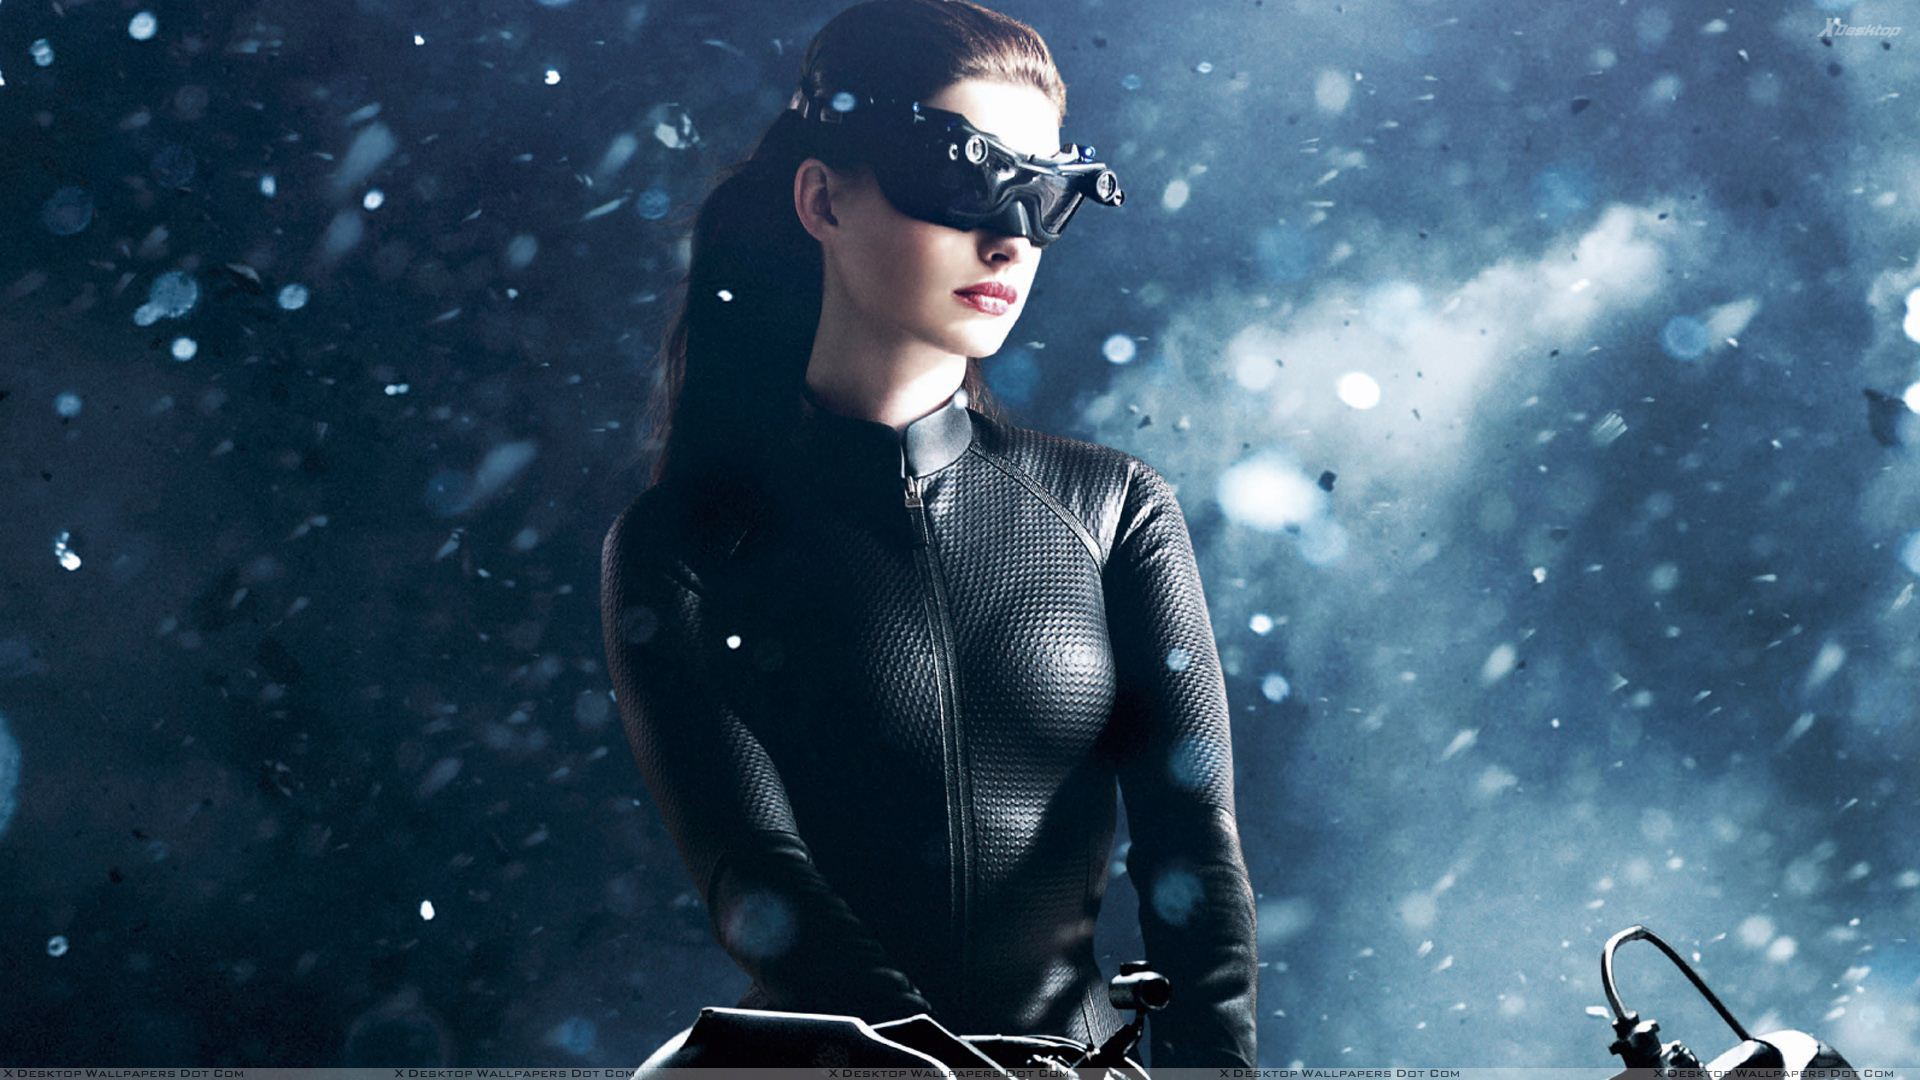 the dark knight rises wallpapers, photos & images in hd